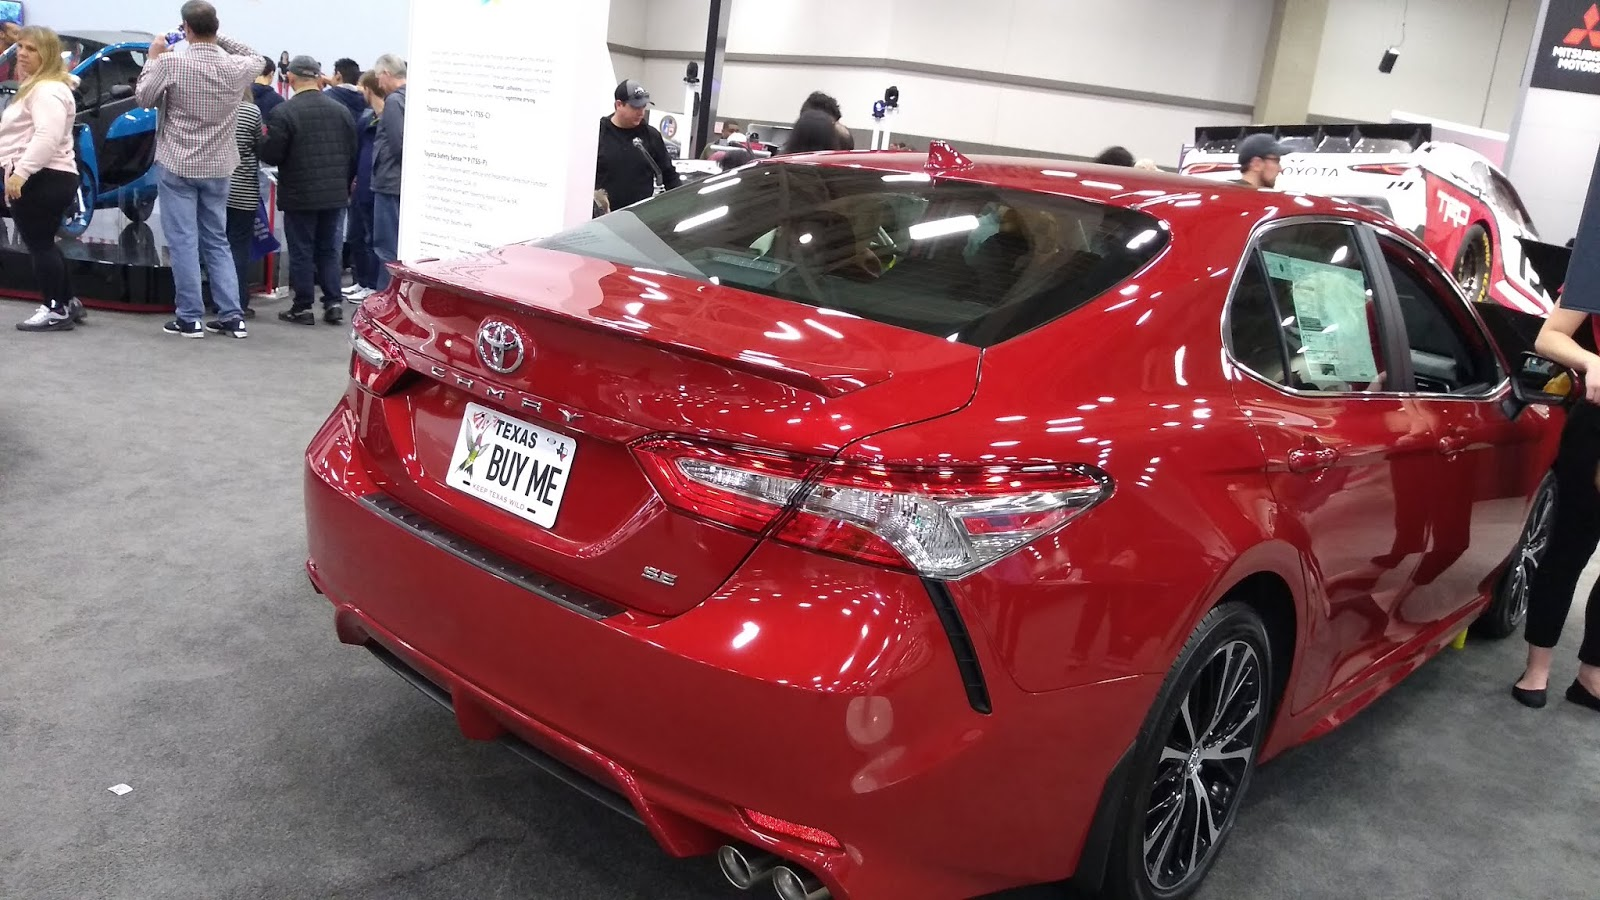 Through My Life: 2019 DFW Autoshow at Dallas, Texas State, USA